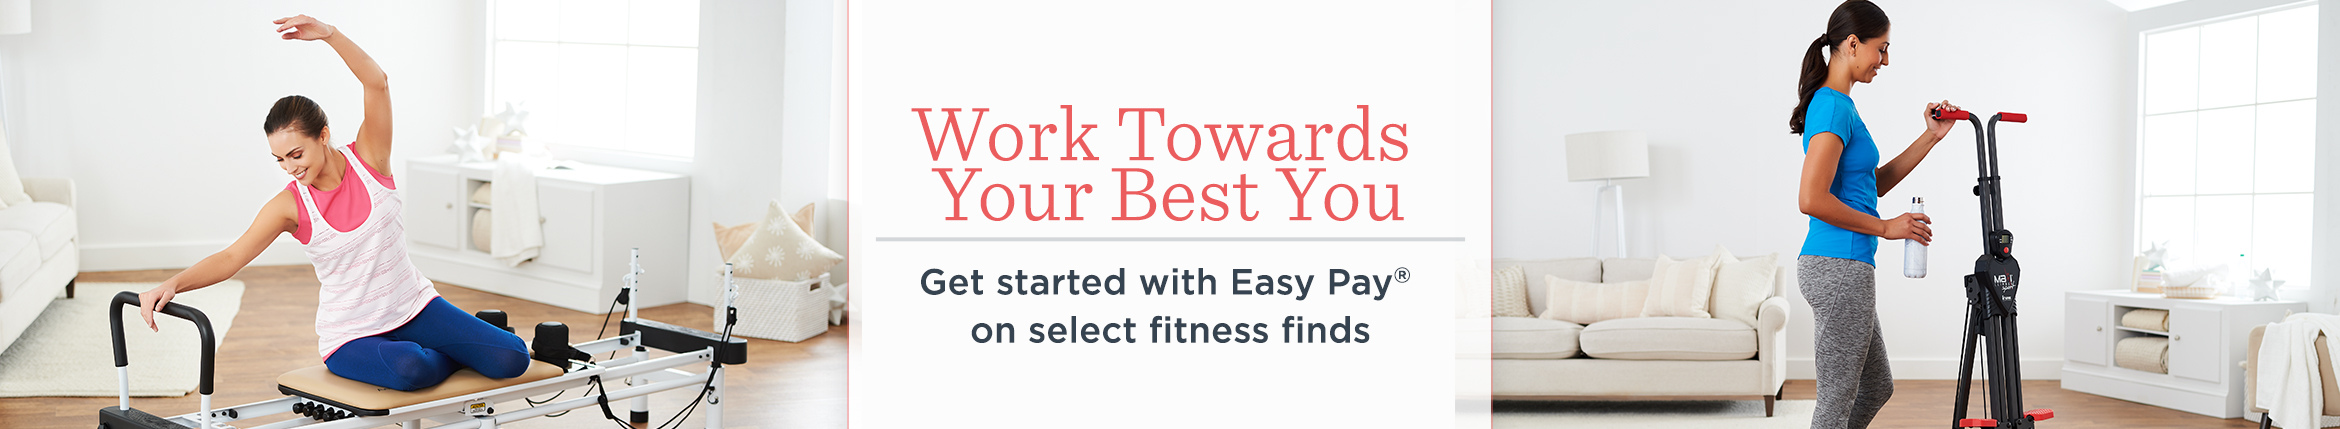 Work Towards Your Best You.  Get started with Easy Pay® on select fitness finds